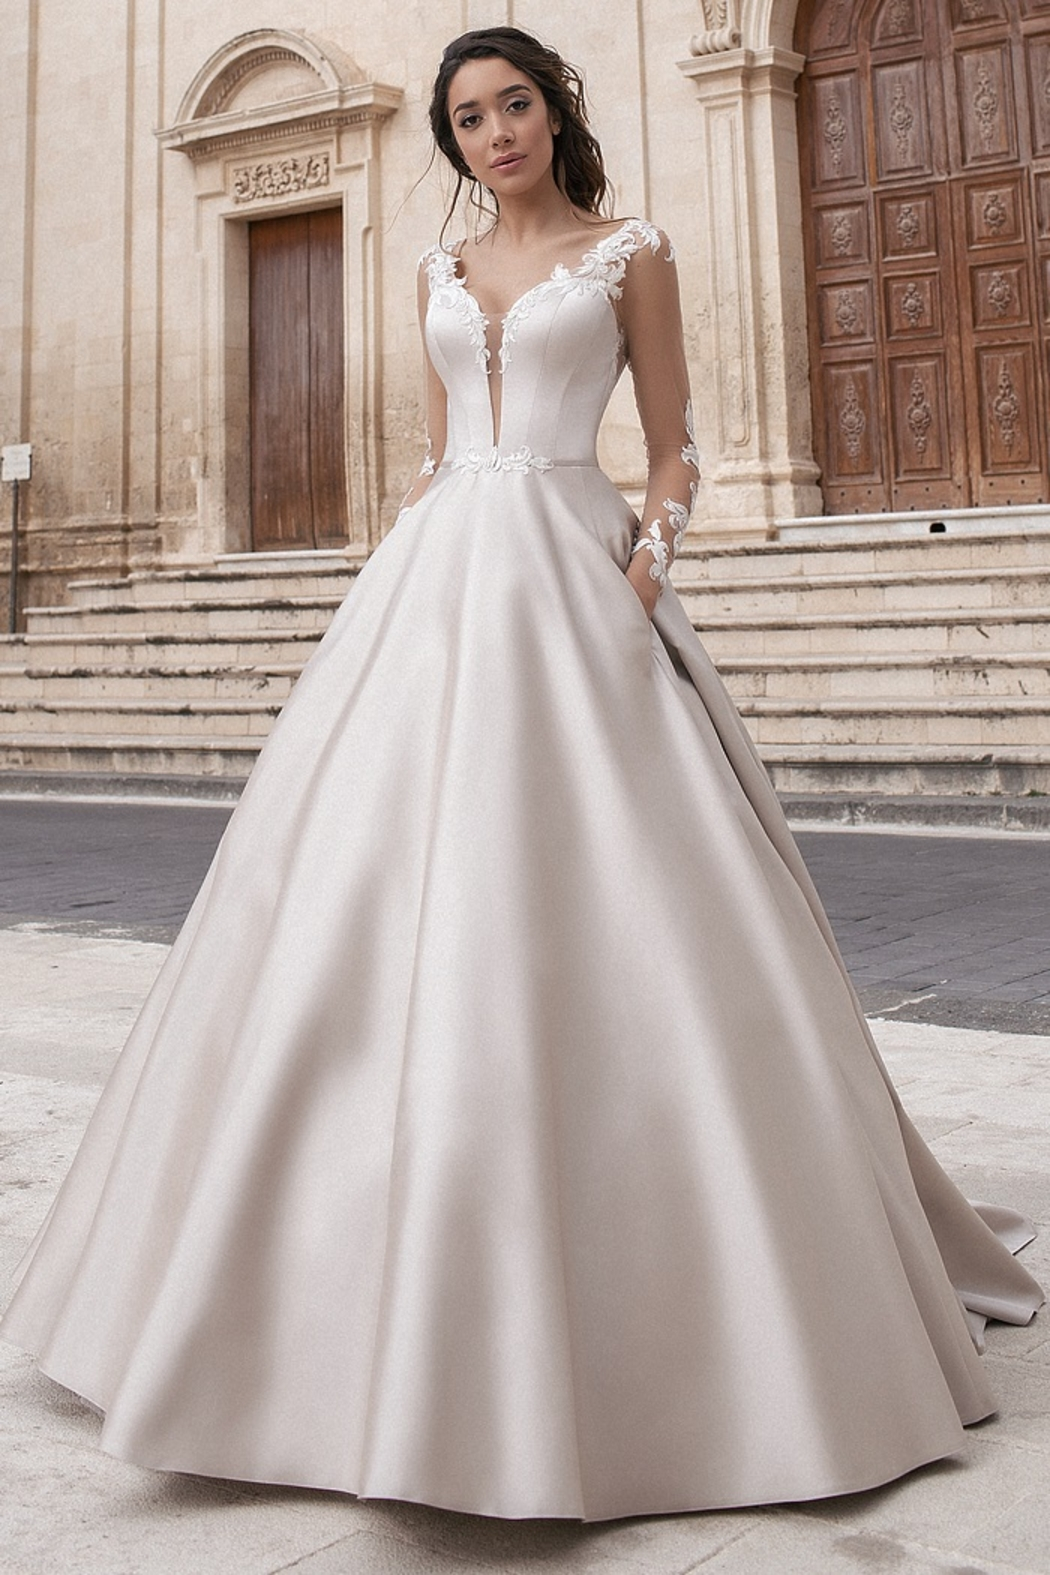 Rima Lav Cream Bridal Ballgown With Sleeves - Main Image